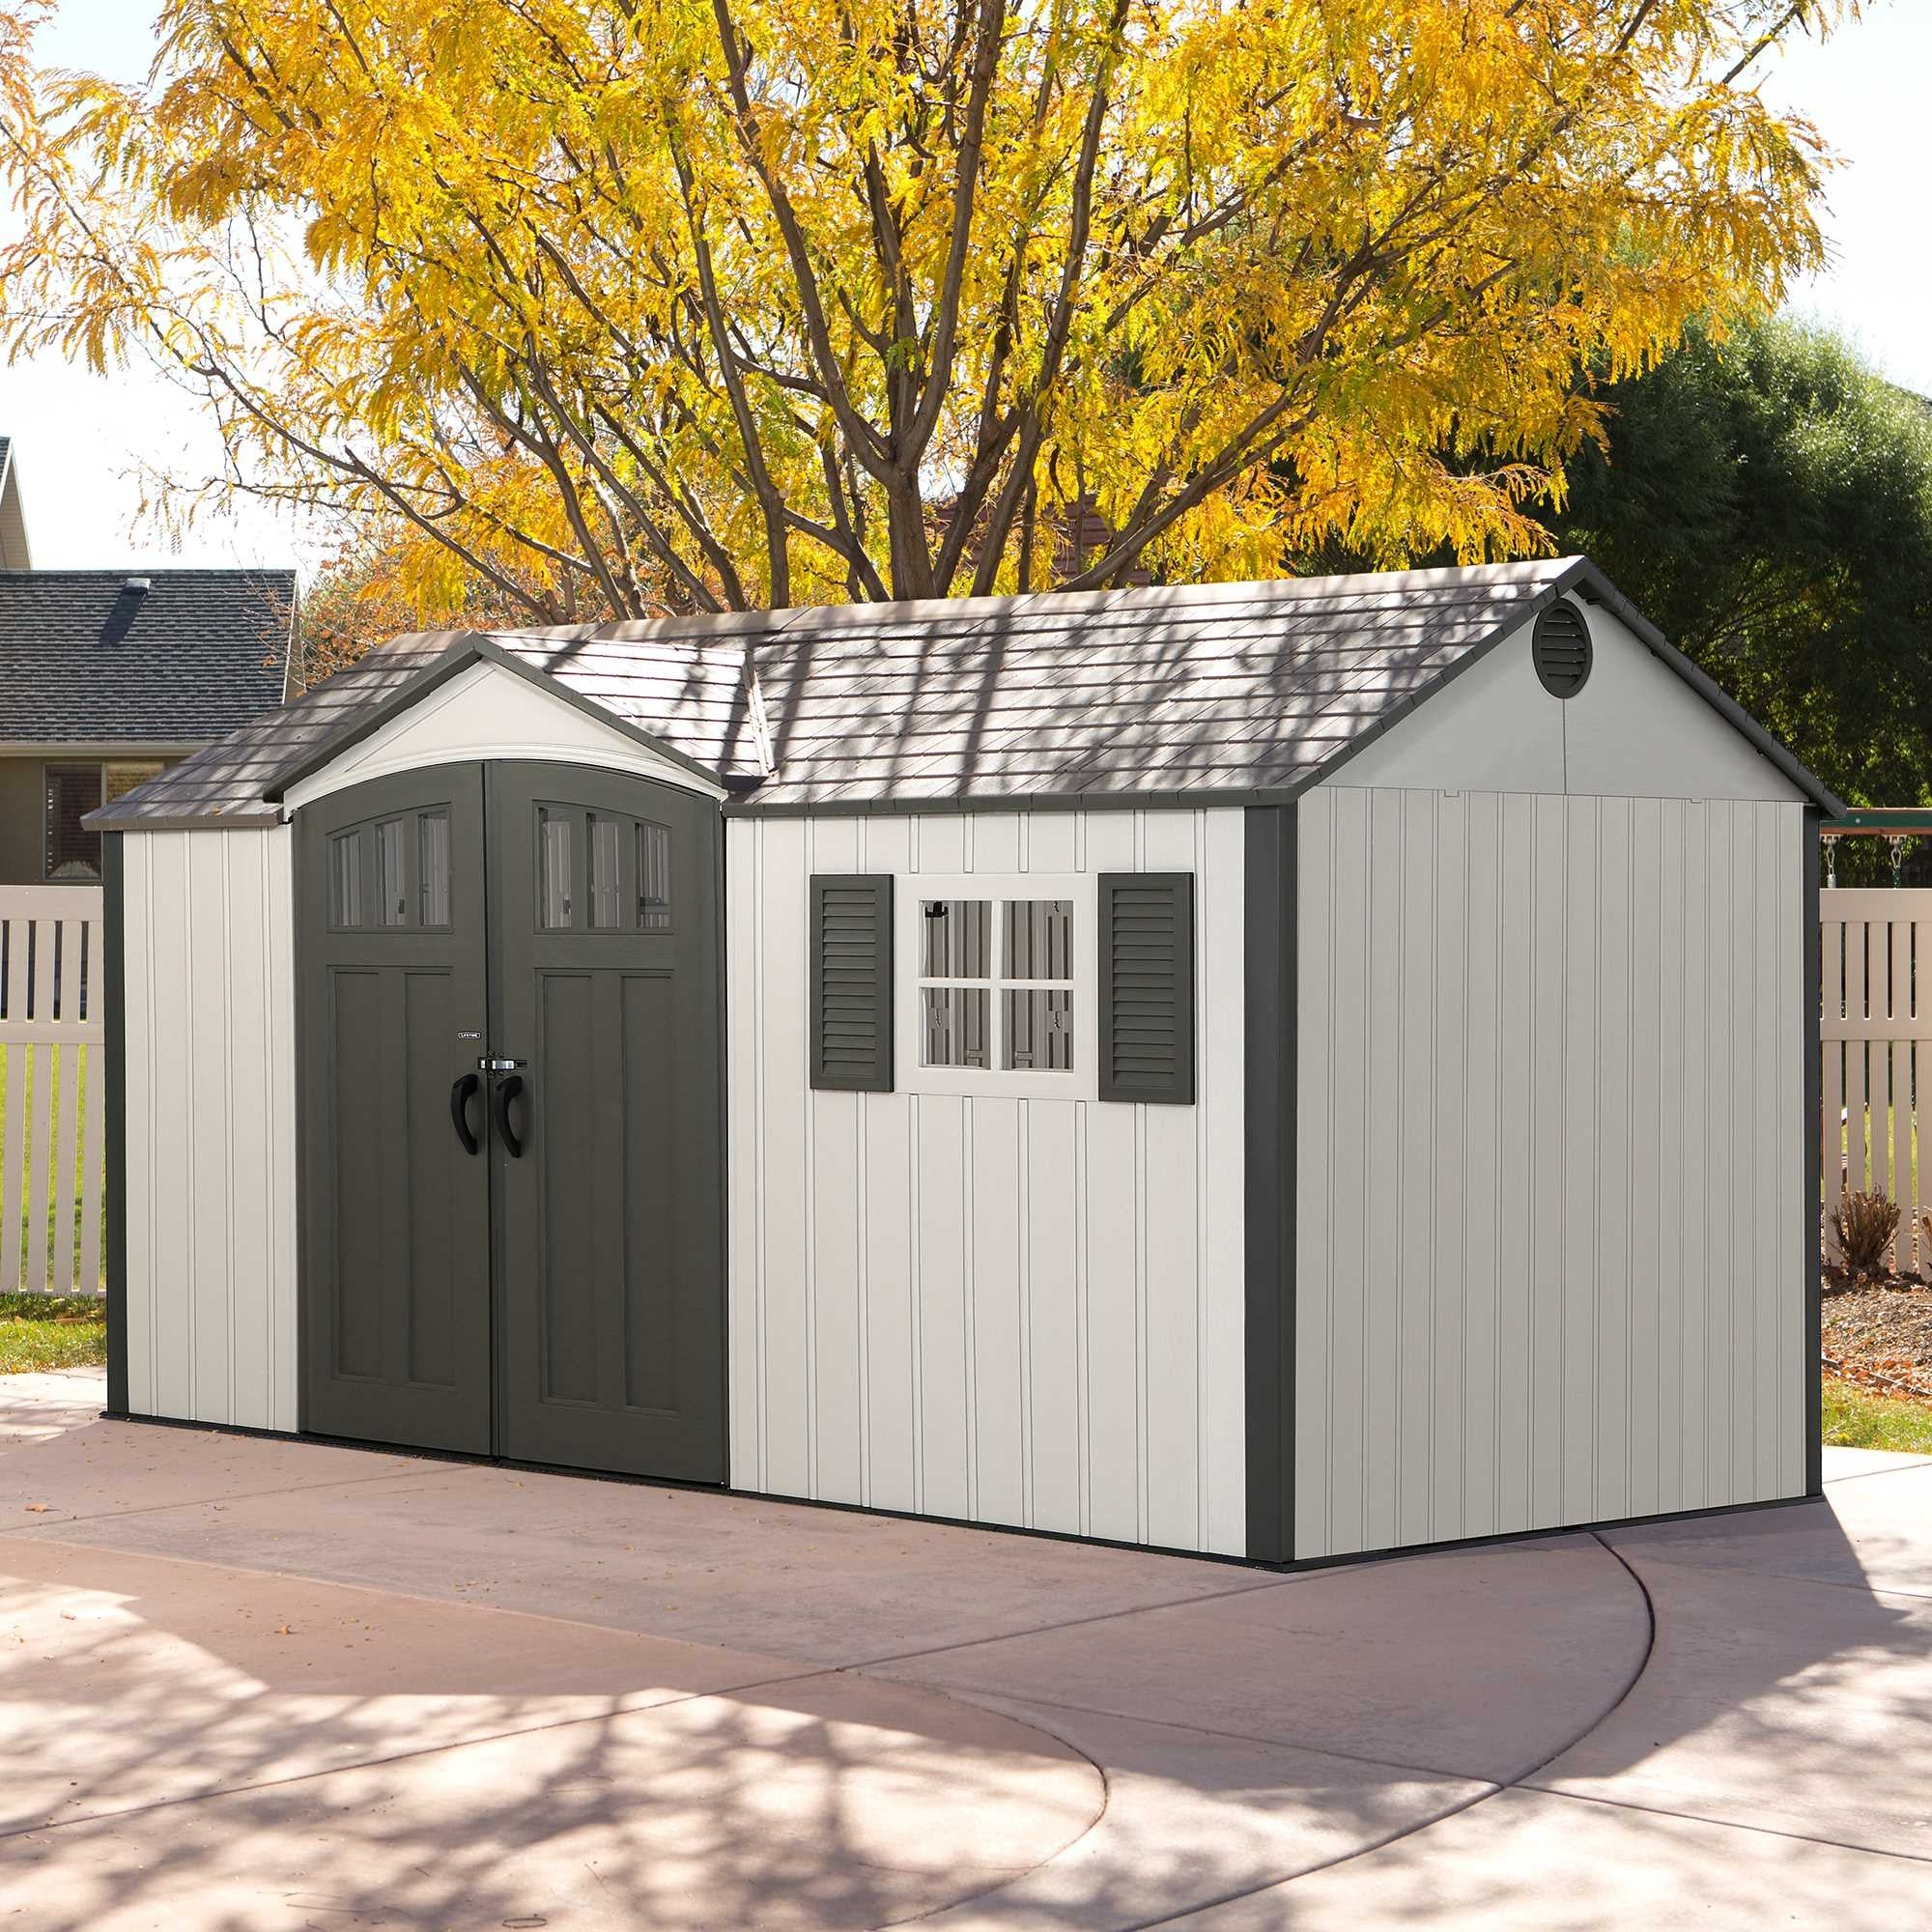 direct garden apex shed prd plastic sheds outdoor our keter from ft buy pi